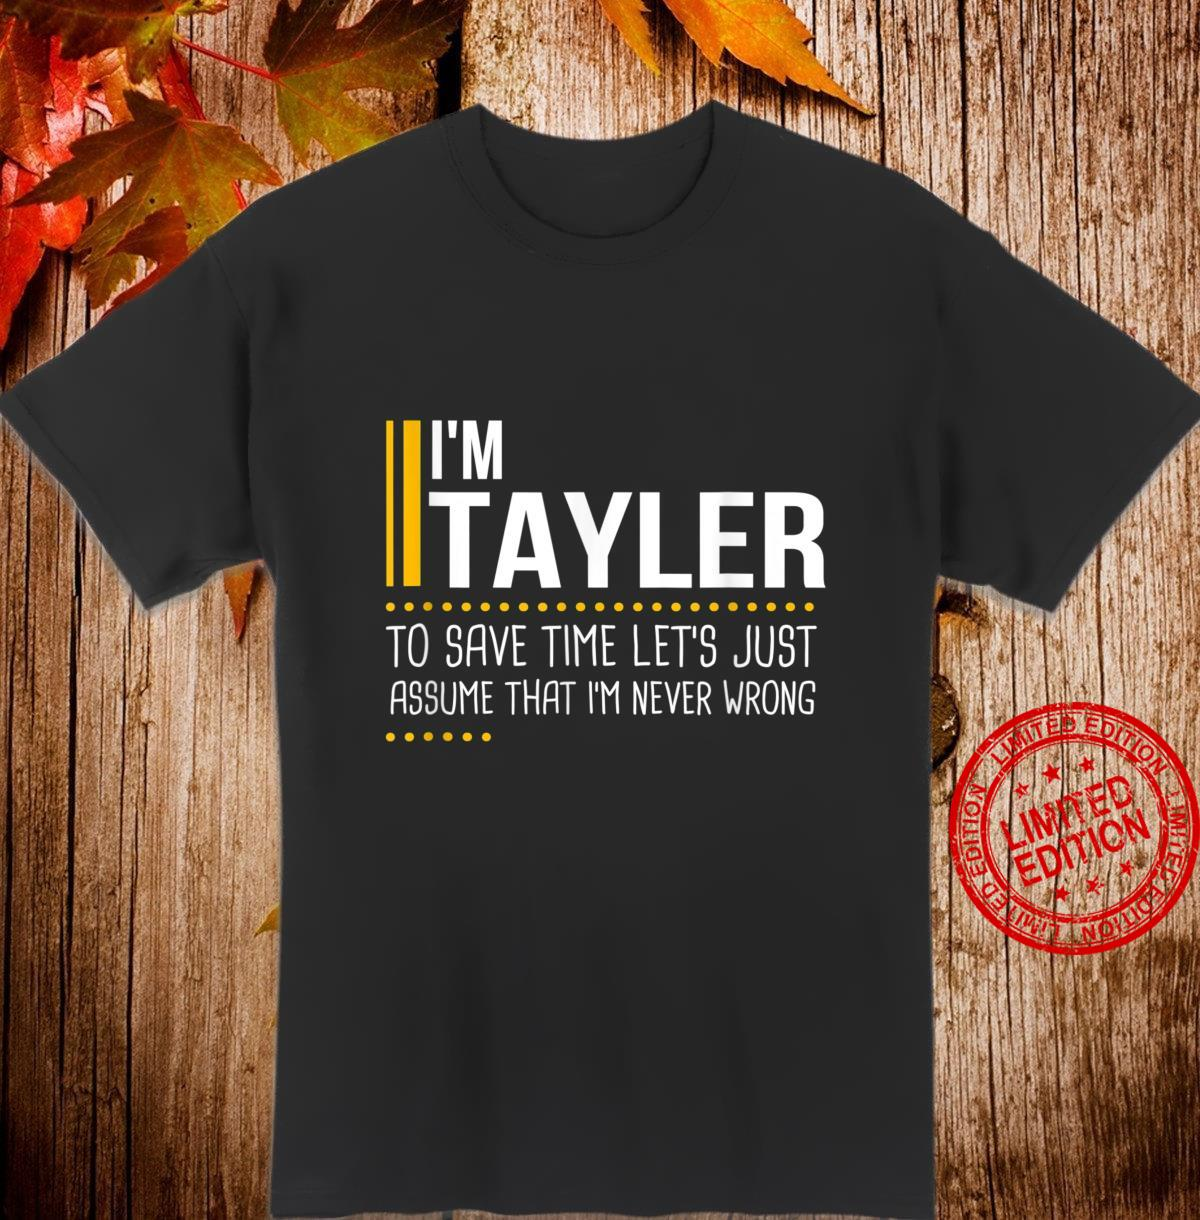 Save Time Lets Assume Tayler Is Never Wrong Name Shirt